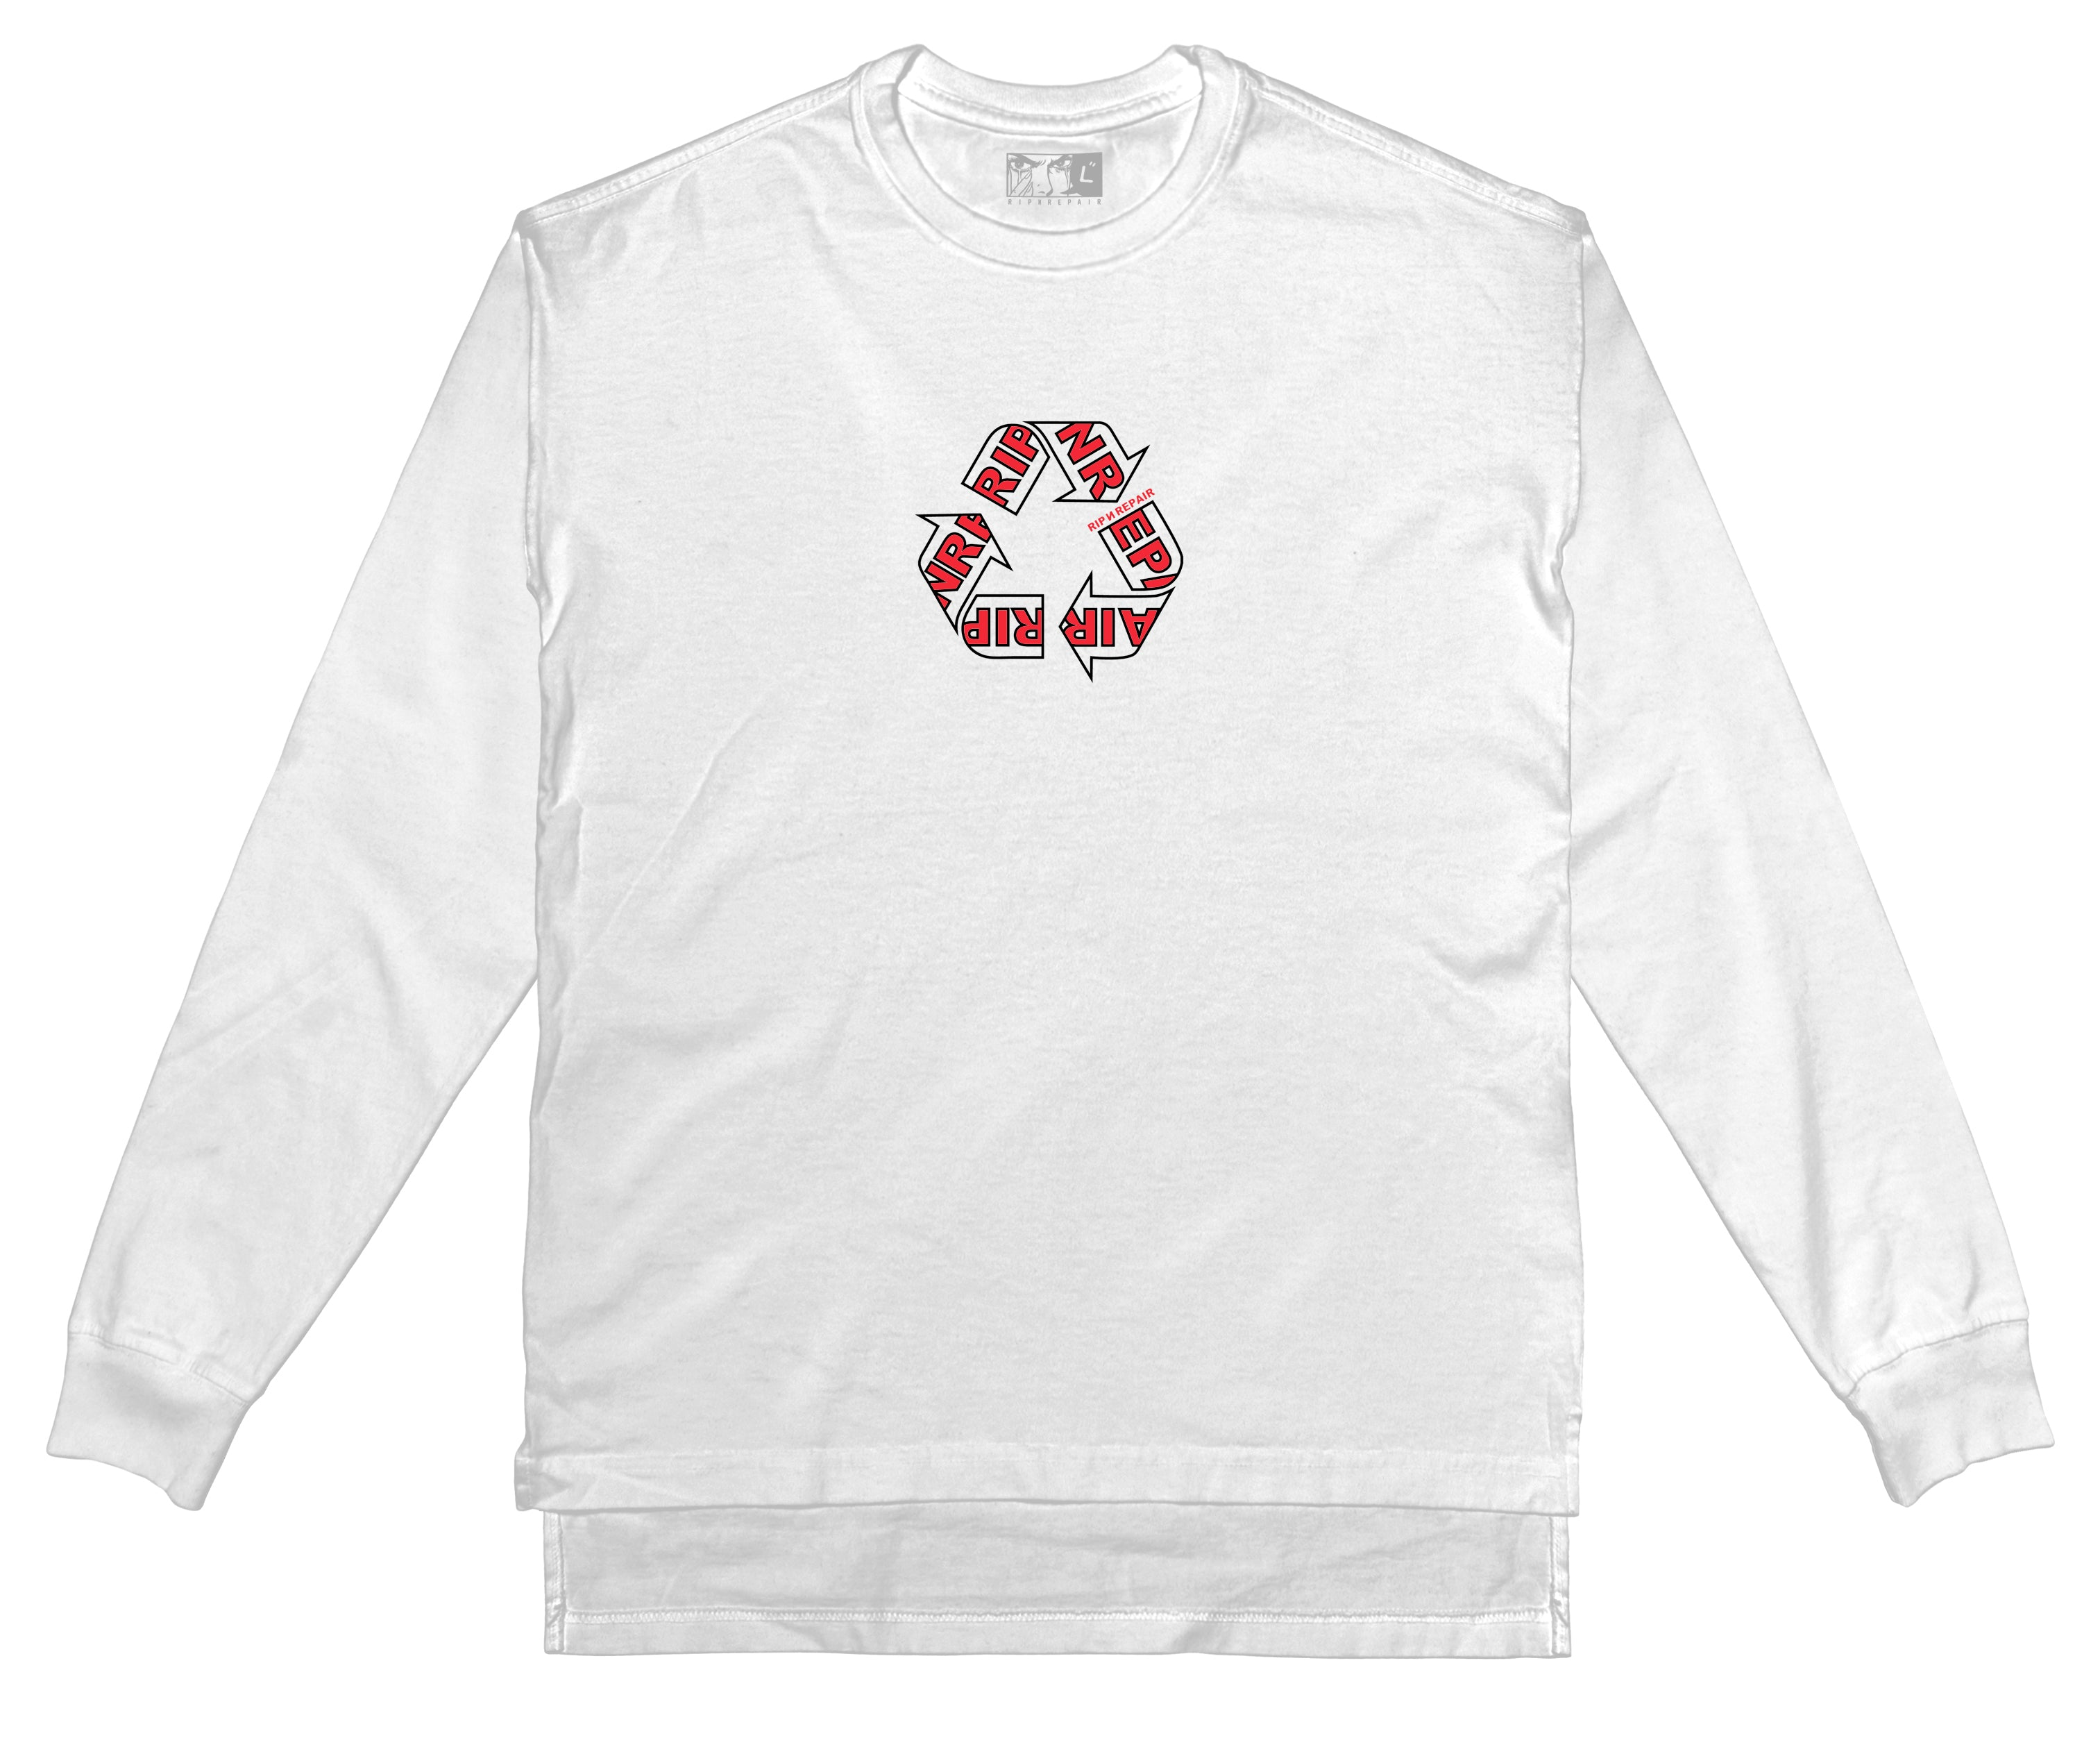 WIP - Long sleeve T-Shirt (White) - RIPNRPR